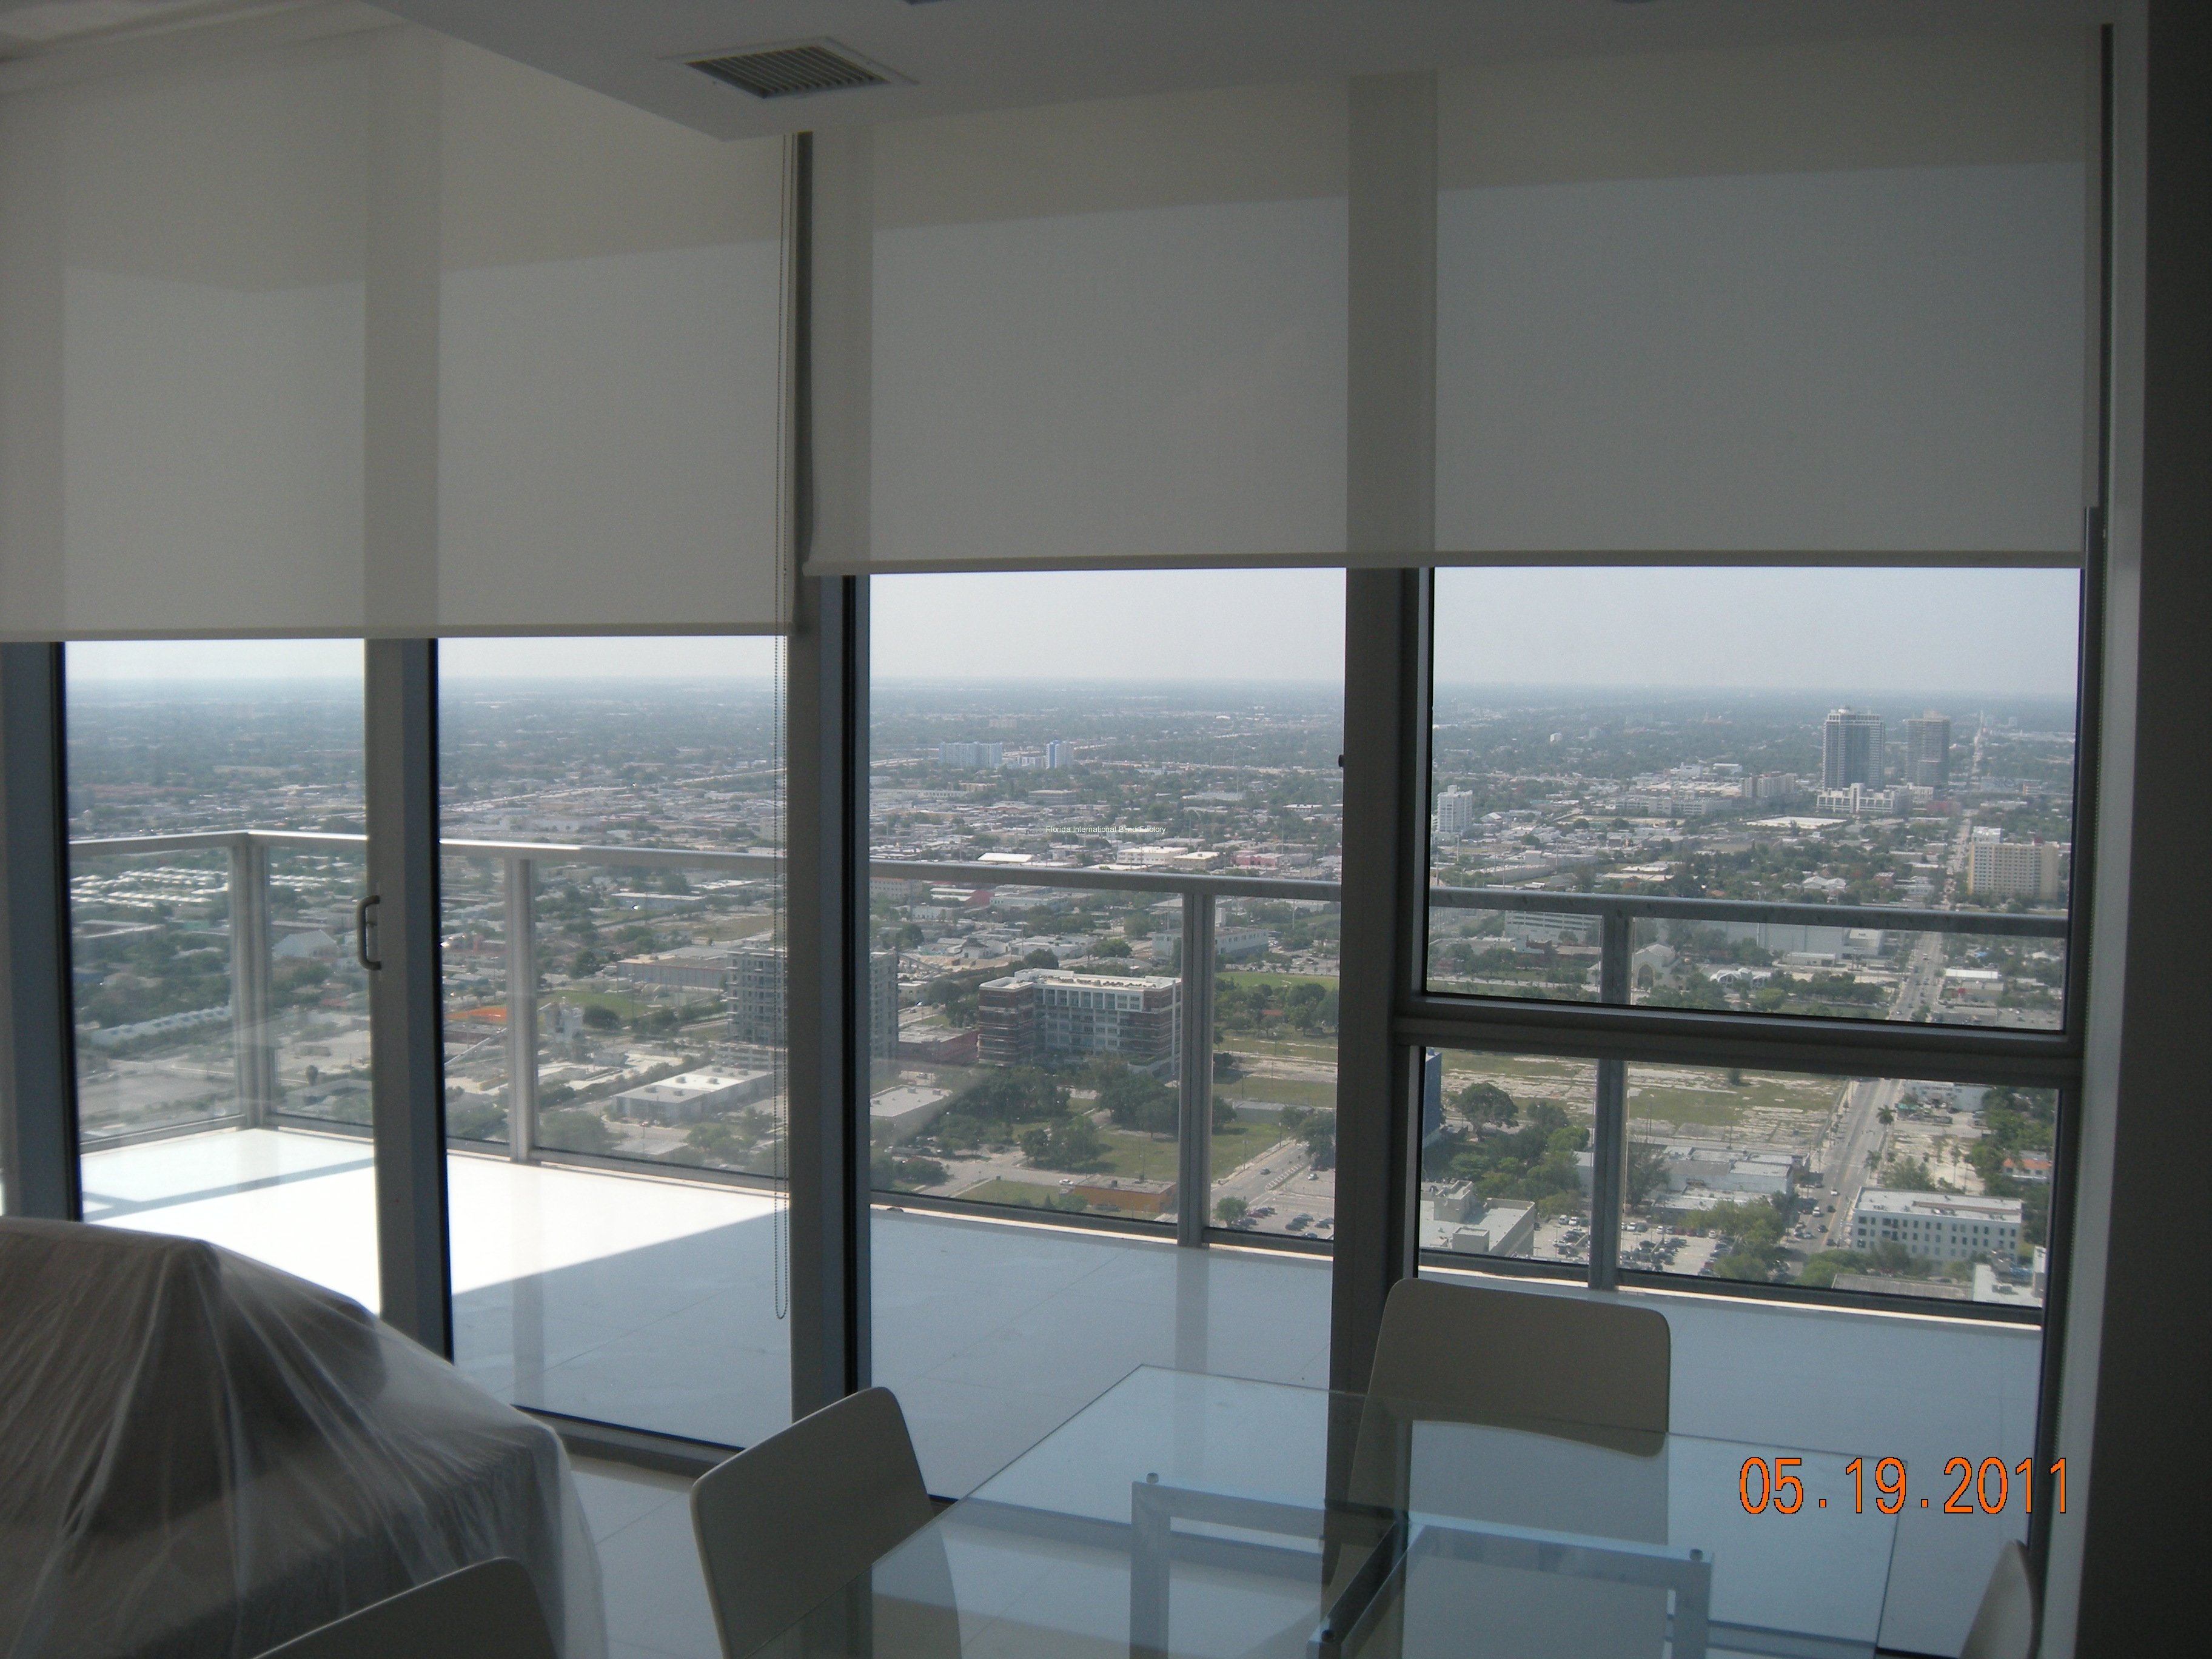 Custom Roller Shades For Windows : Roller shades manufacturers of custom window treatments